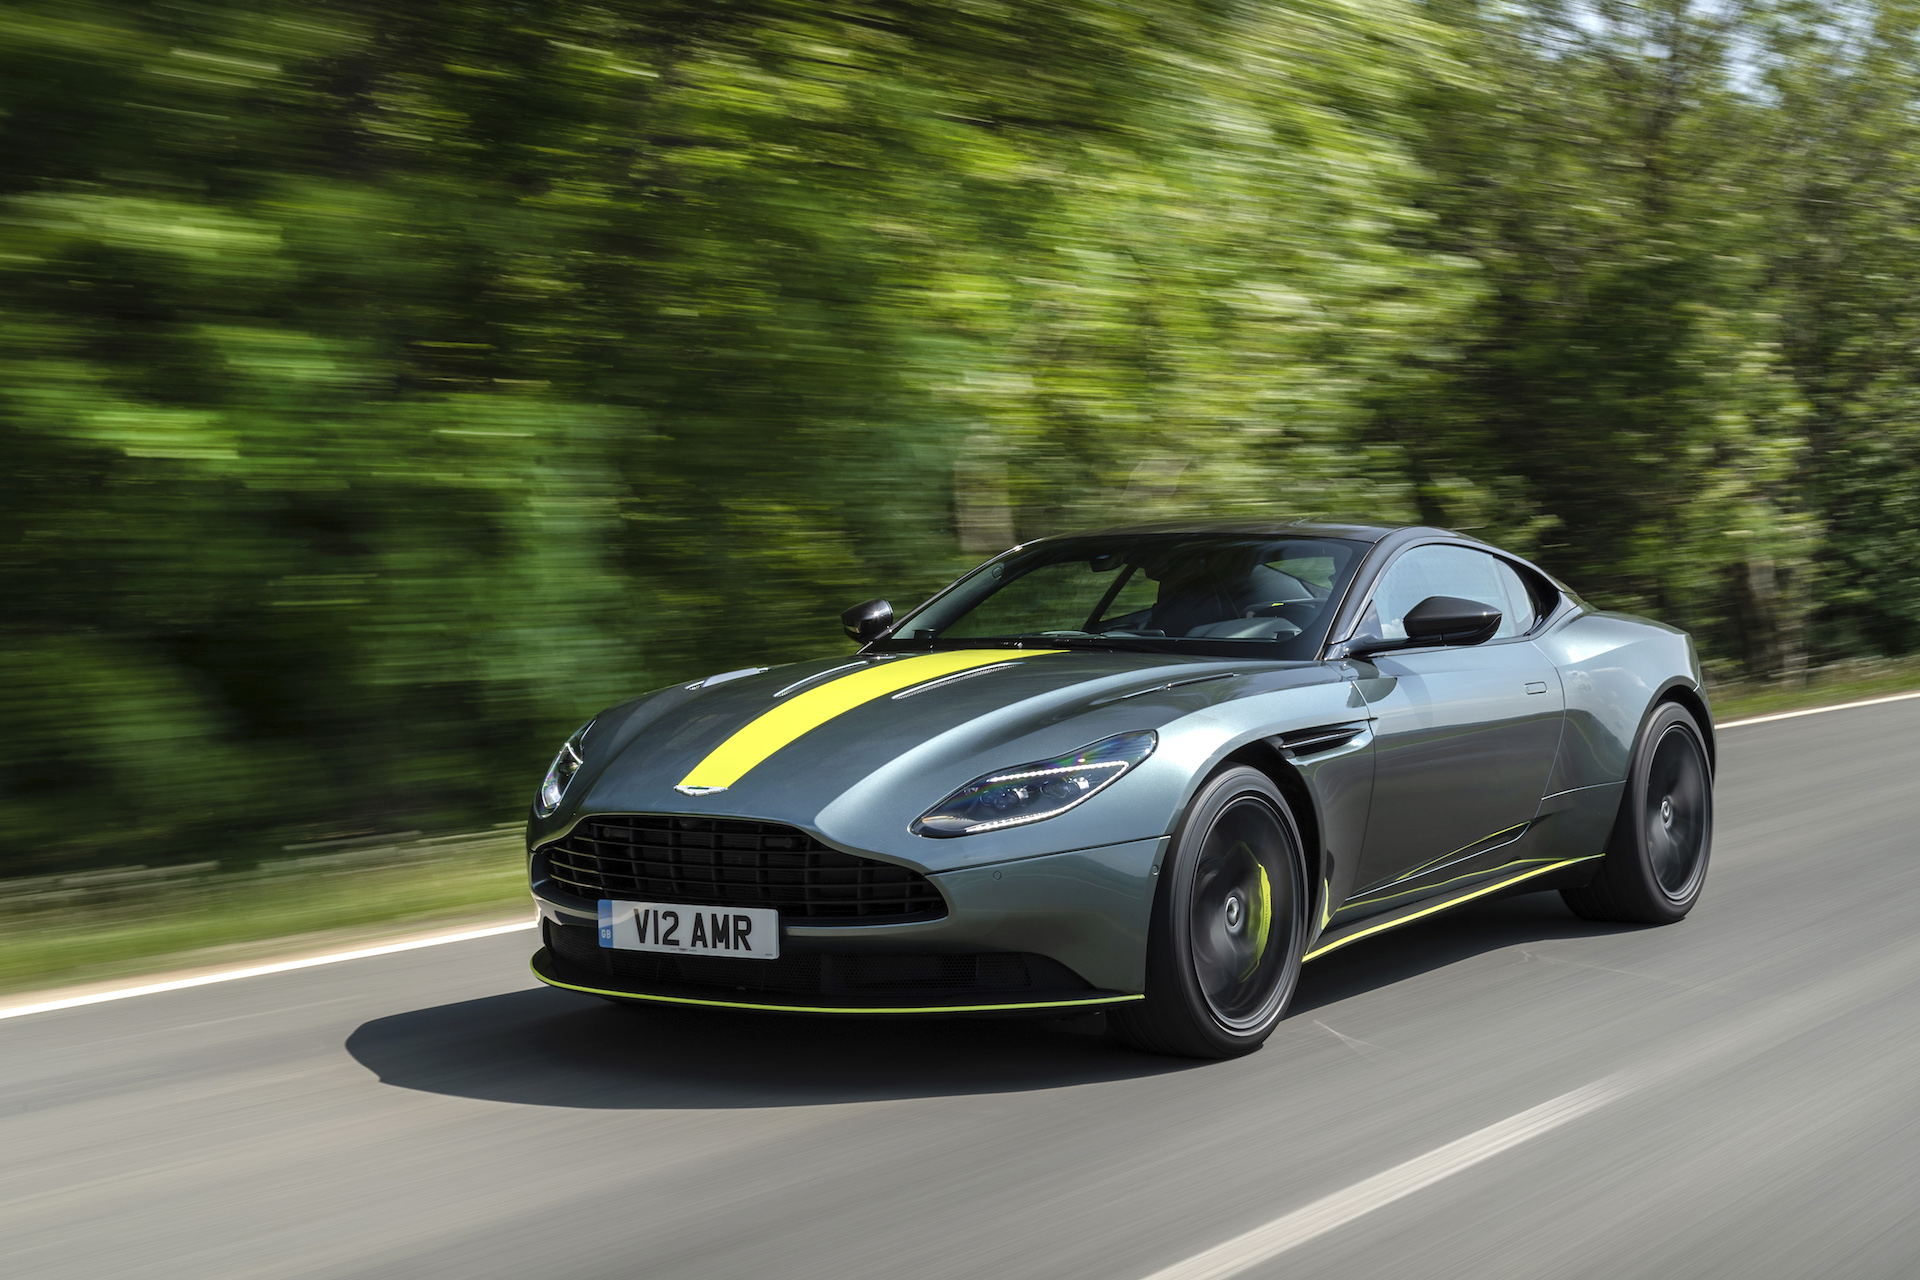 2019 aston martin db11 amr first drive review: continuous